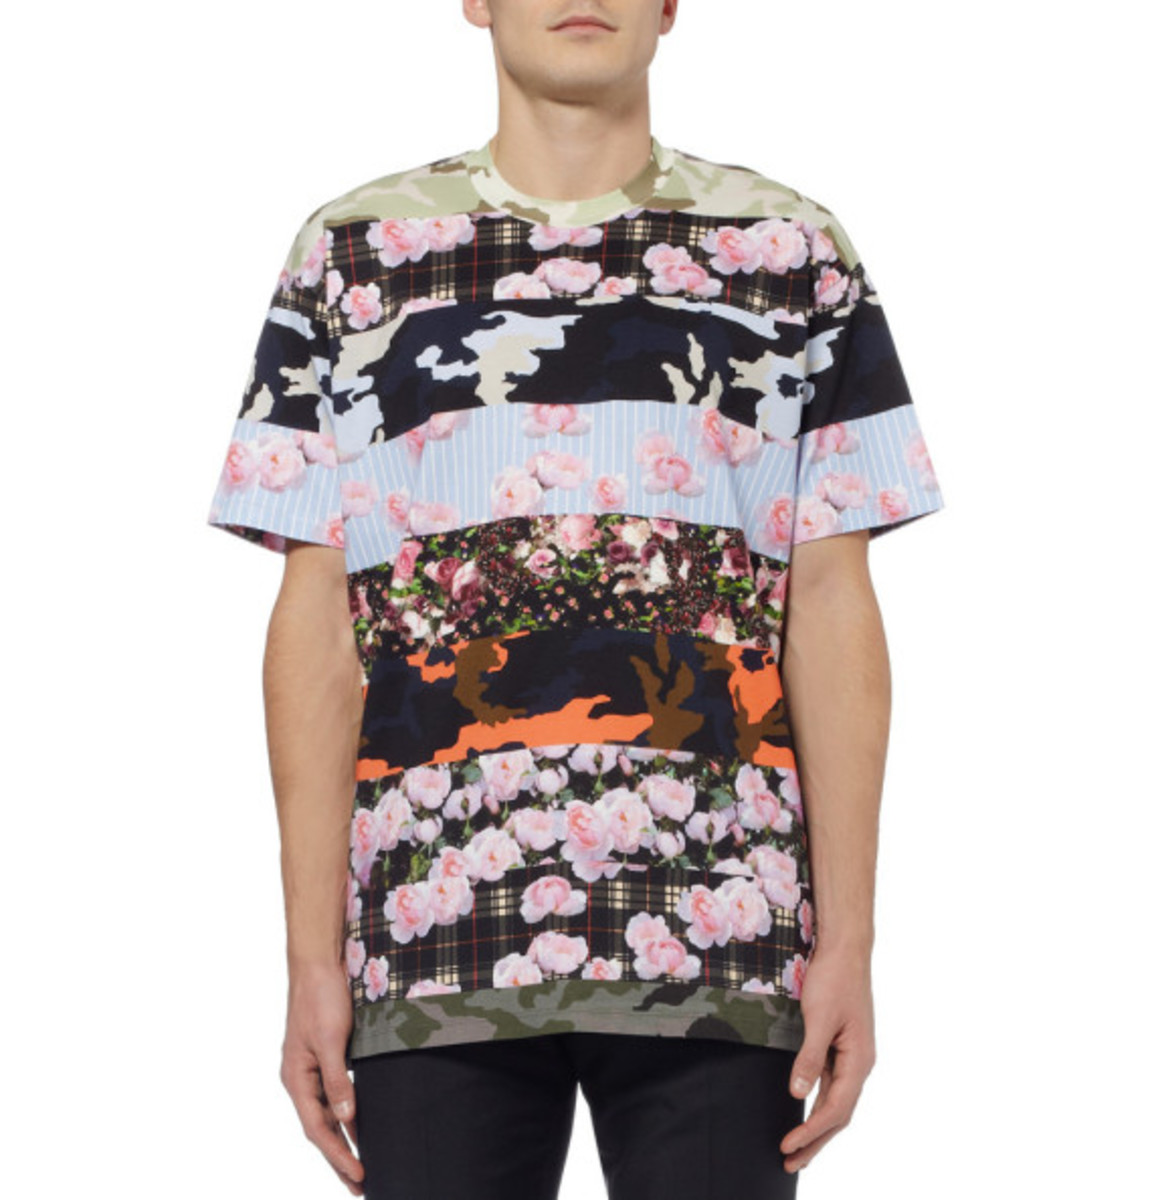 givenchy-oversized-panelled-t-shirt-04